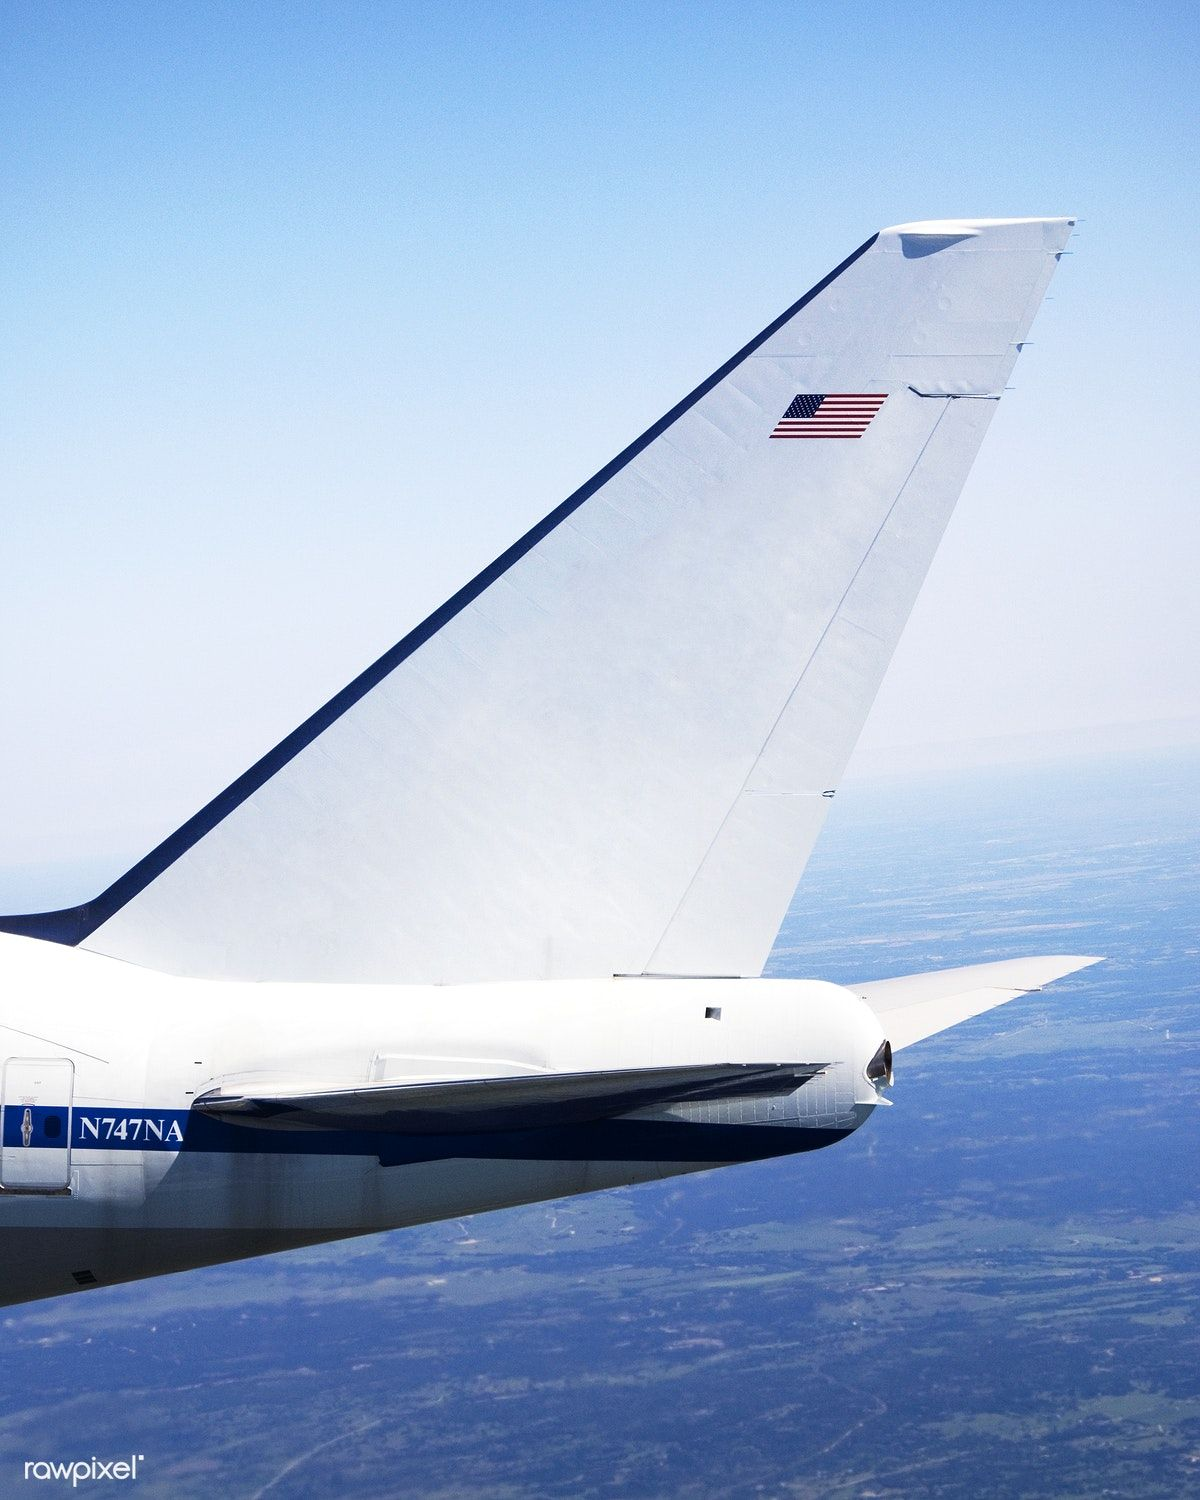 Logos Of Nasa And The German Aerospace Center Dlr Are Displayed Prominently On The Tail Of The Stratospheric Observatory For Infrared Astronomy Sofia 747sp Med Billeder